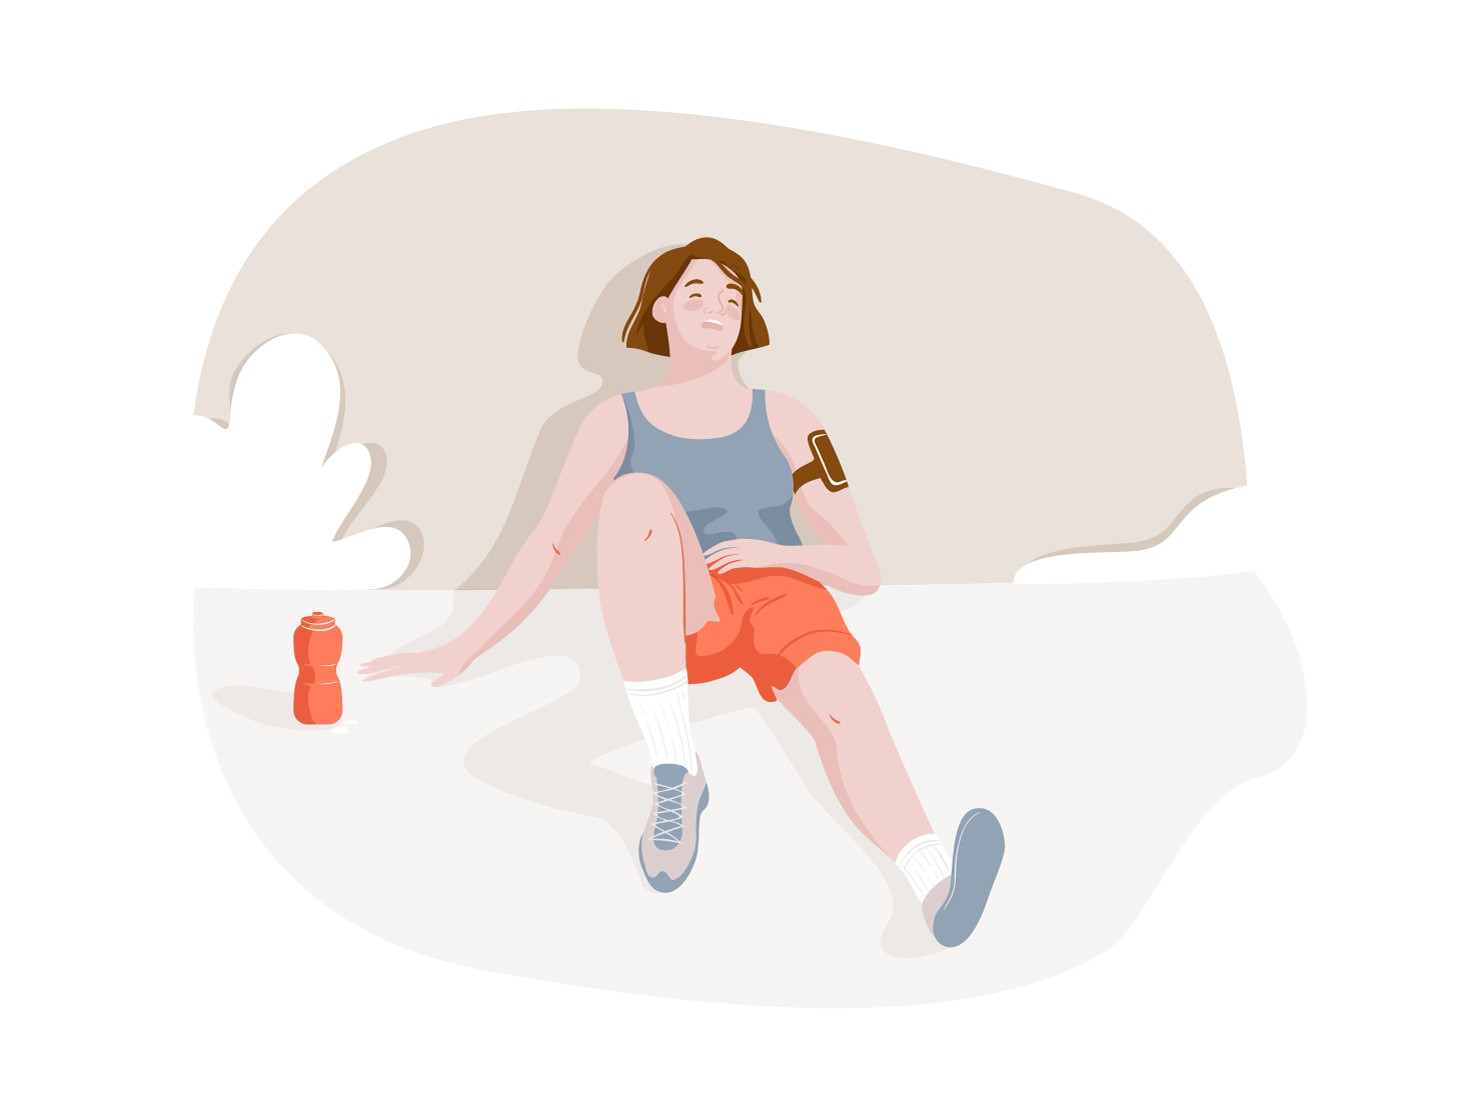 Workout tired workout run running sport graphic girl women pastel web woman vector character illustration